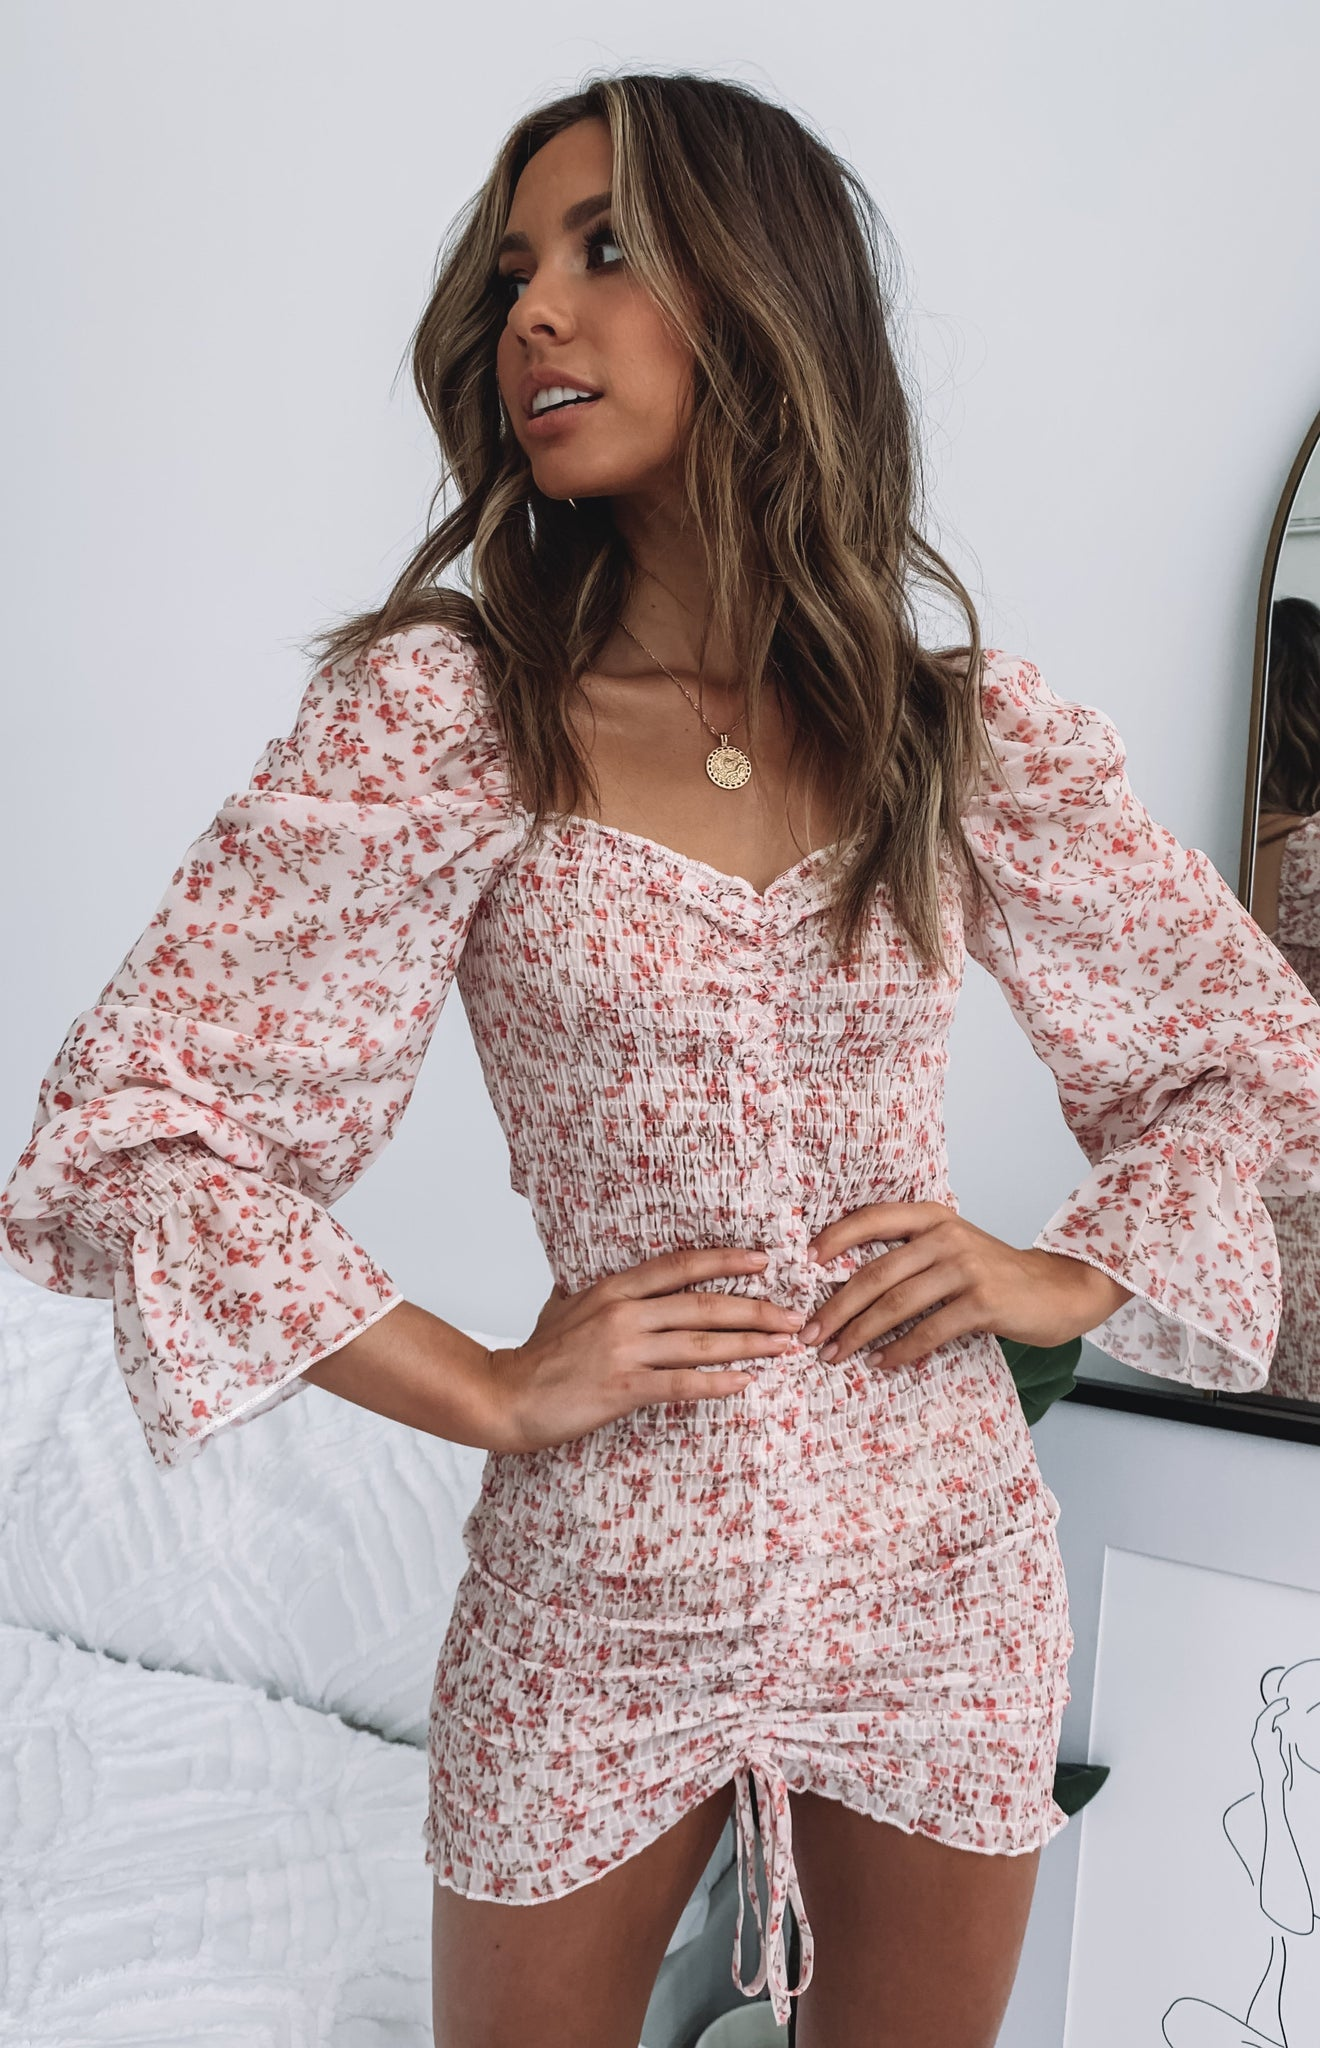 https://files.beginningboutique.com.au/One+More+Time+Dress+Floral.mp4